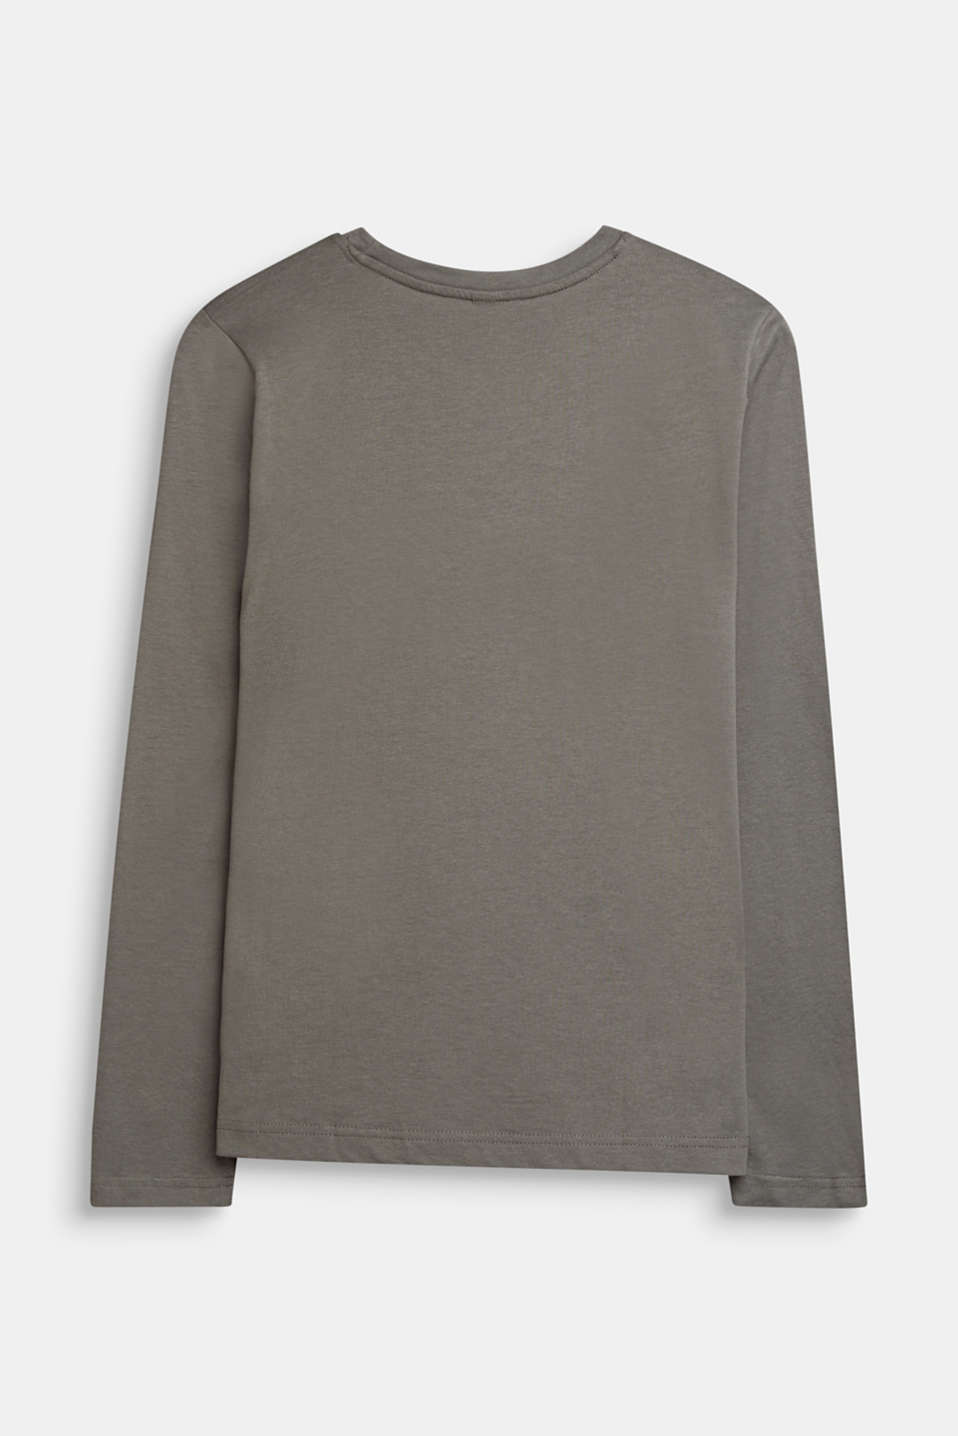 Statement long sleeve top, 100% cotton, LCKAKI, detail image number 1